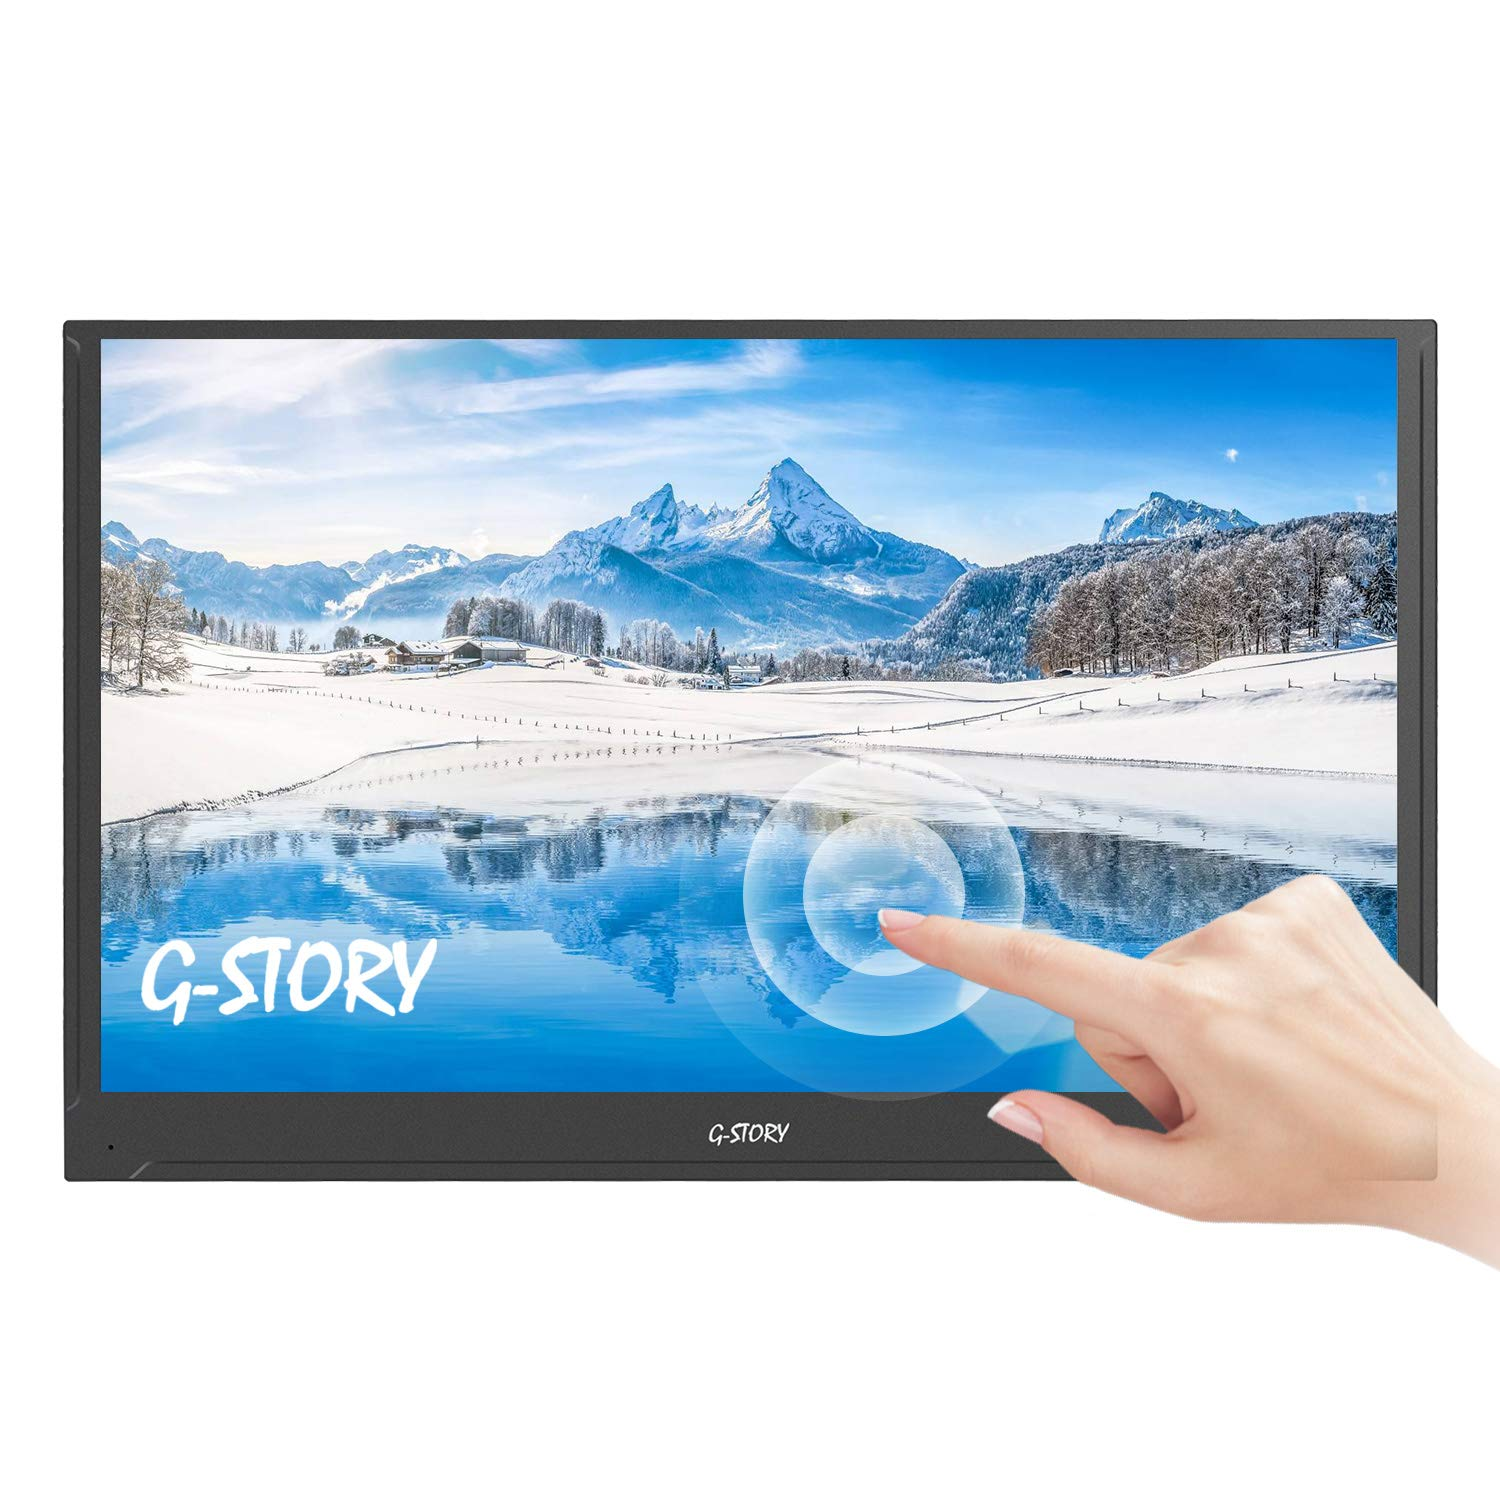 G STORY Ultrathin Touchscreen Portable Direct Connected